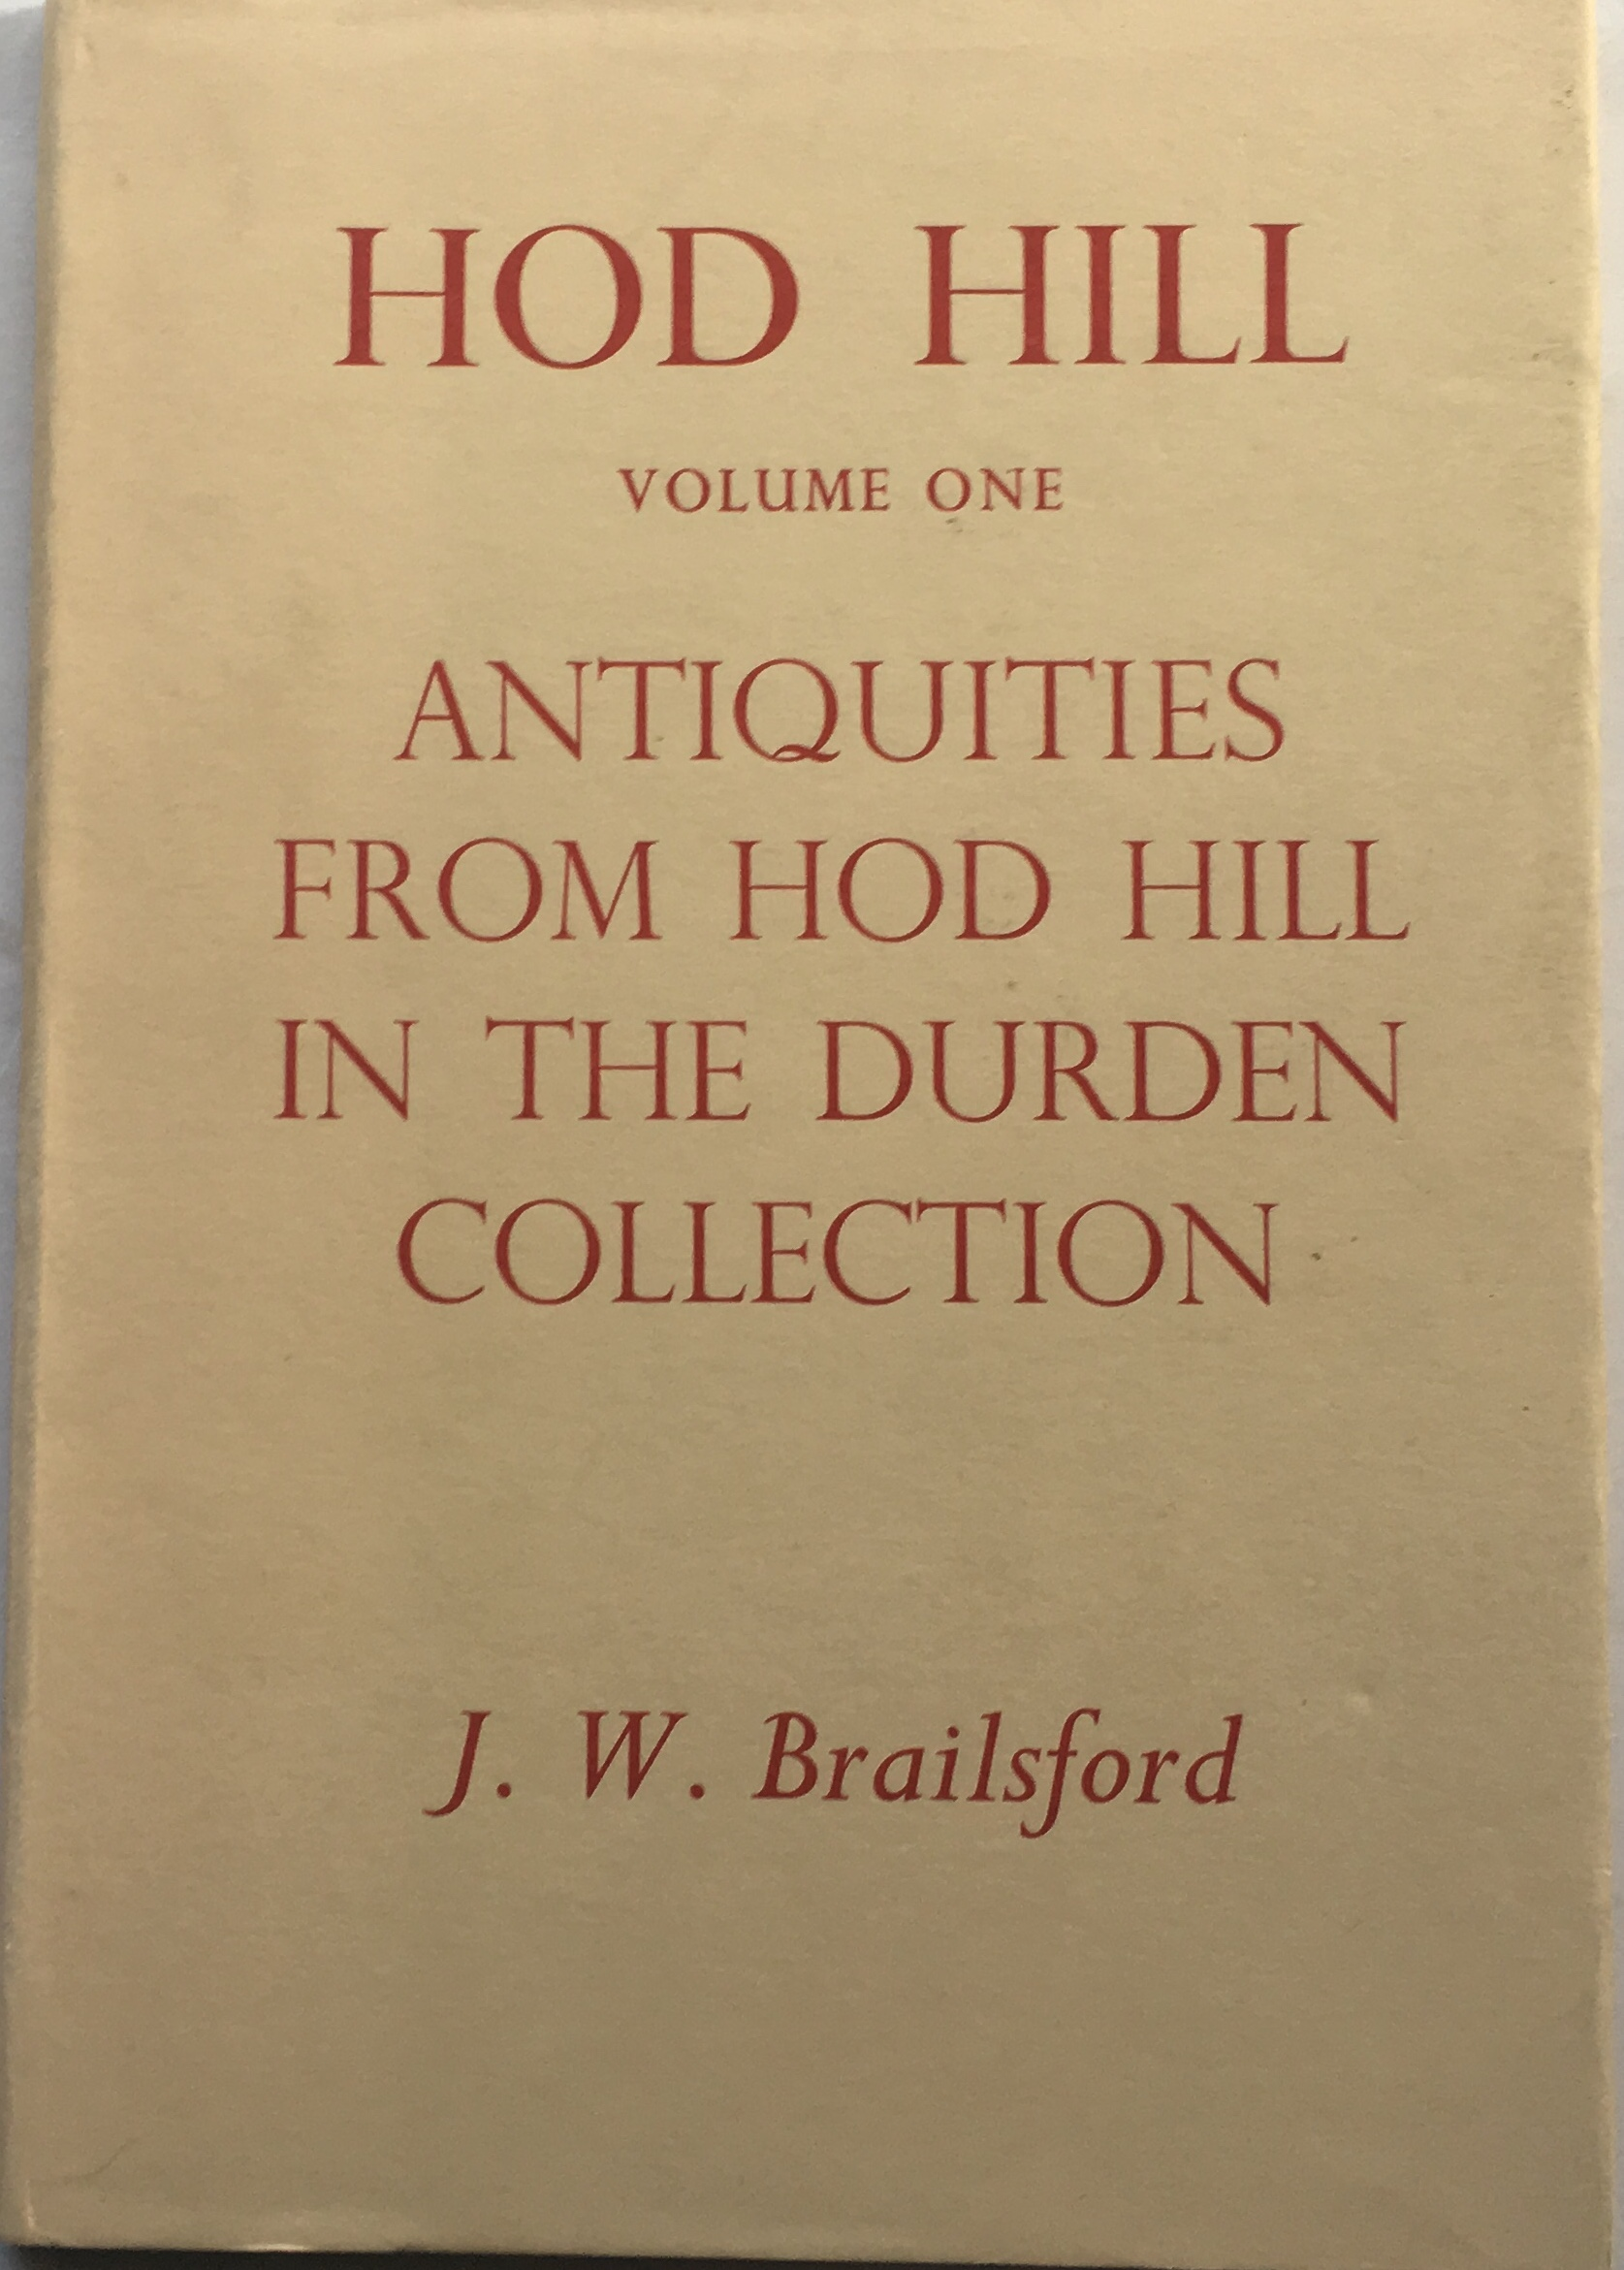 Image for Hod Hill :Volume One - Antiquities from Hod Hill in the Durden Collection